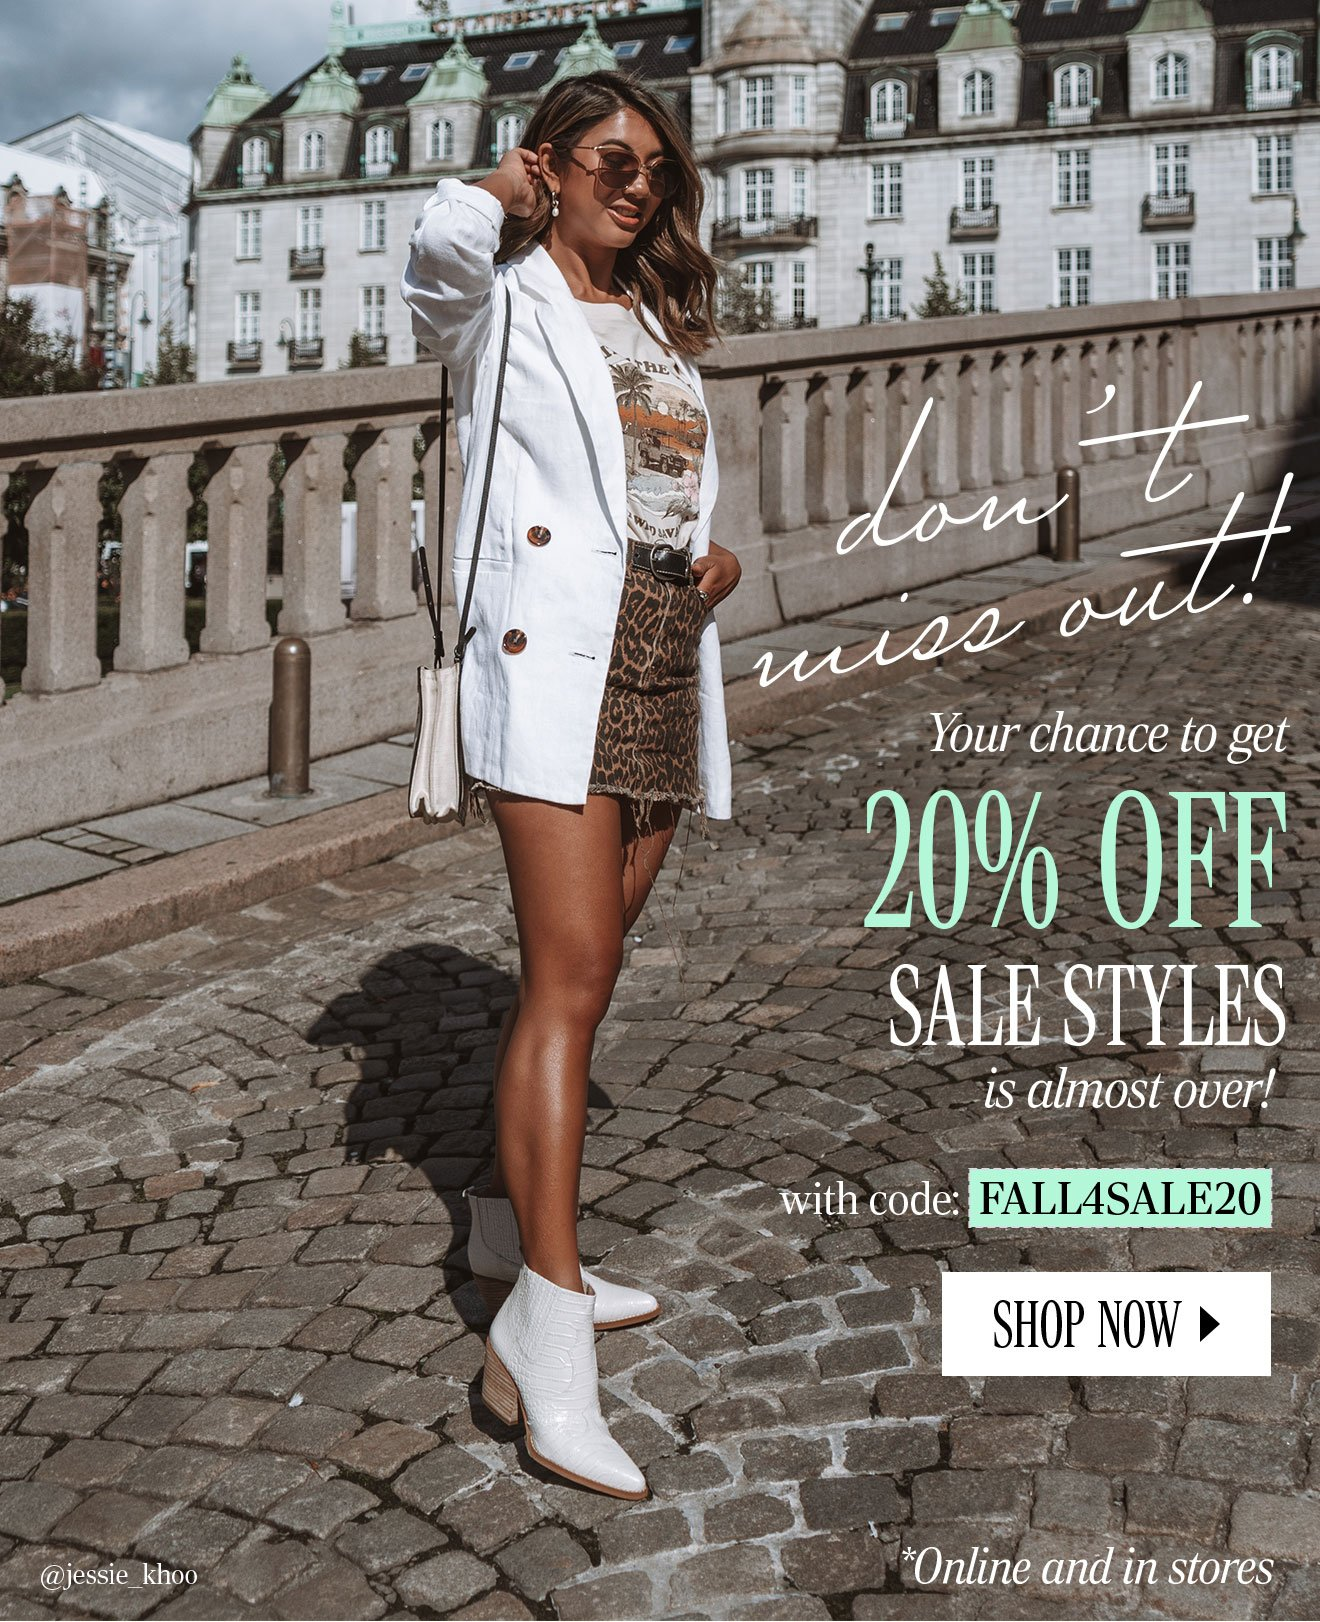 Don't miss out! Your chance to get 20% OFF SALE STYLES is almost over! with code: FALL4SALE20. SHOP NOW. *Online and in stores. @jessie_khoo